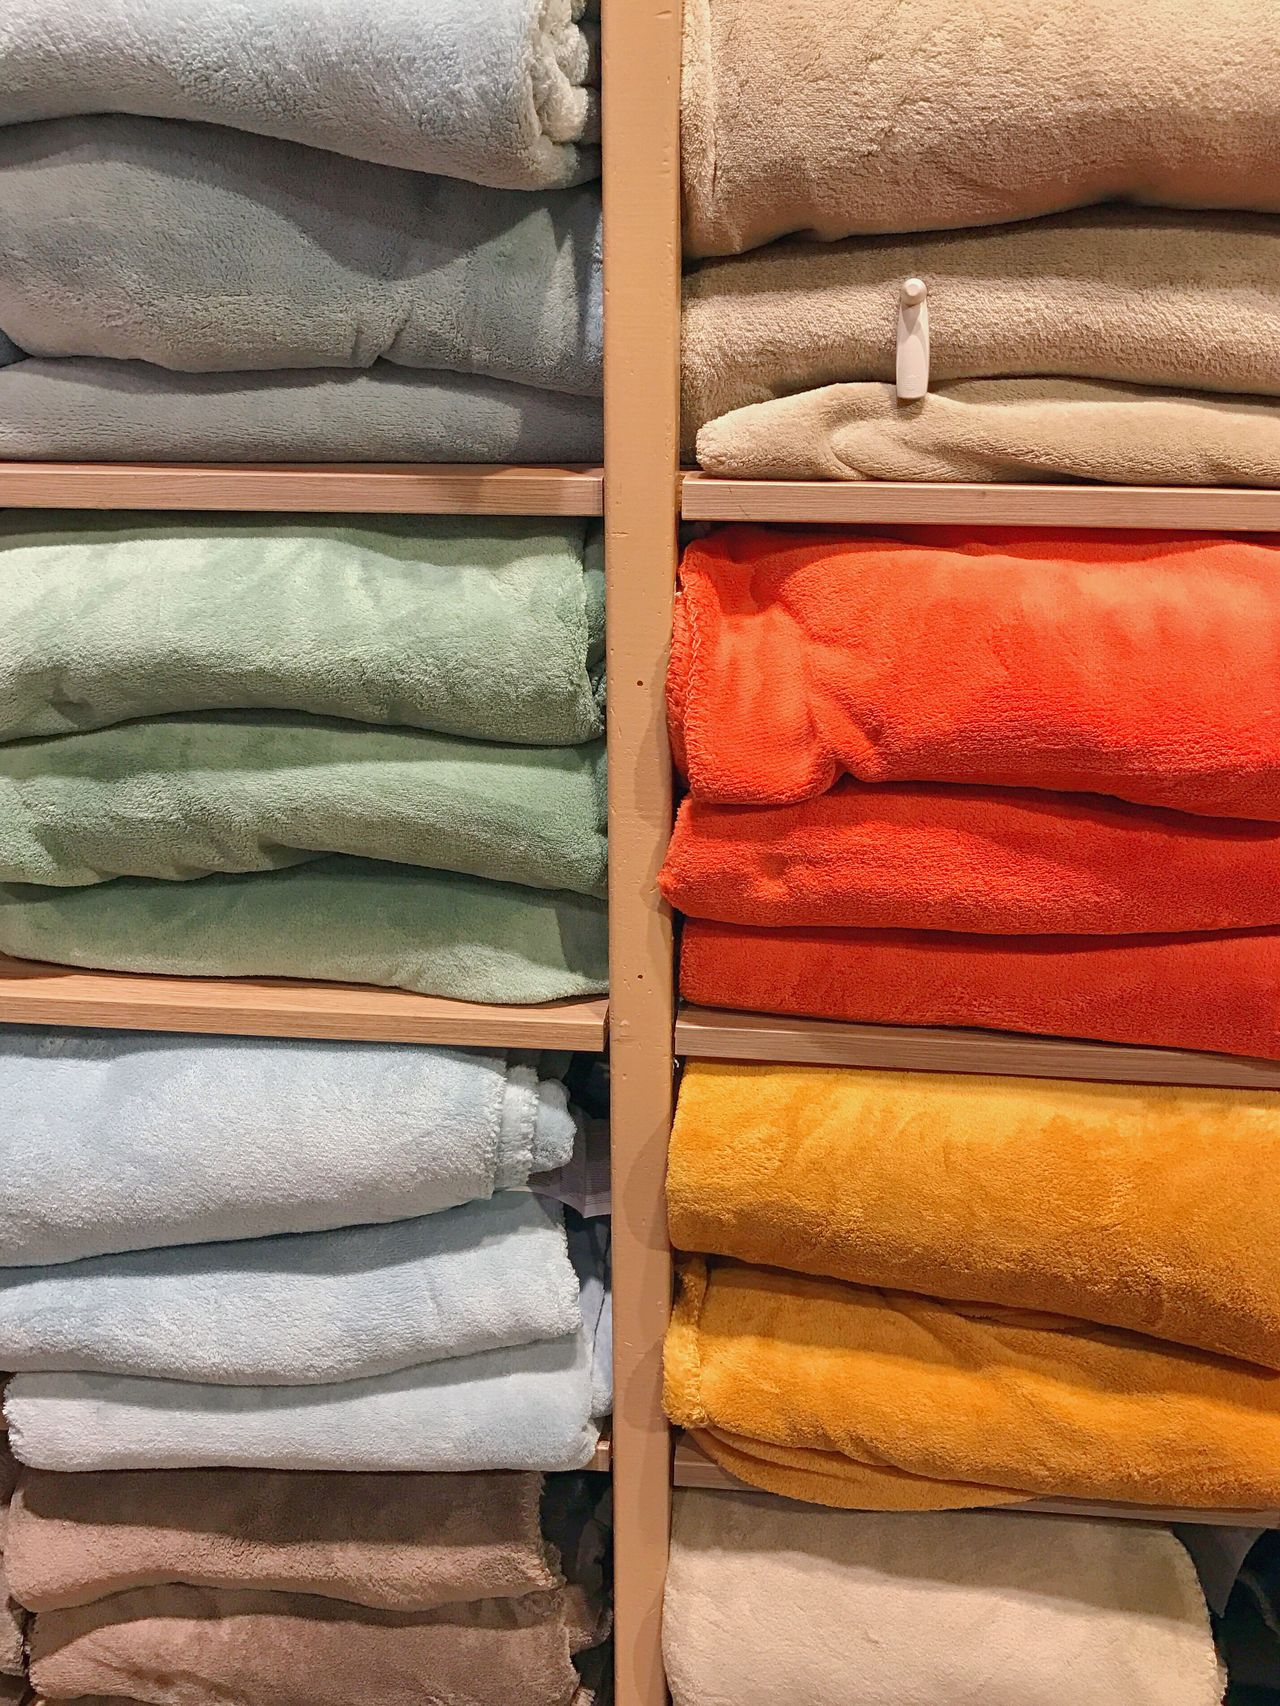 Shop shelves 🌬🌨☃️ Retail  Full Frame Multi Colored Variation No People Choice Backgrounds Indoors  Close-up Day Cozy Warm Winter Always Be Cozy Plaid Blanket Shop Shopping Mall Shelf